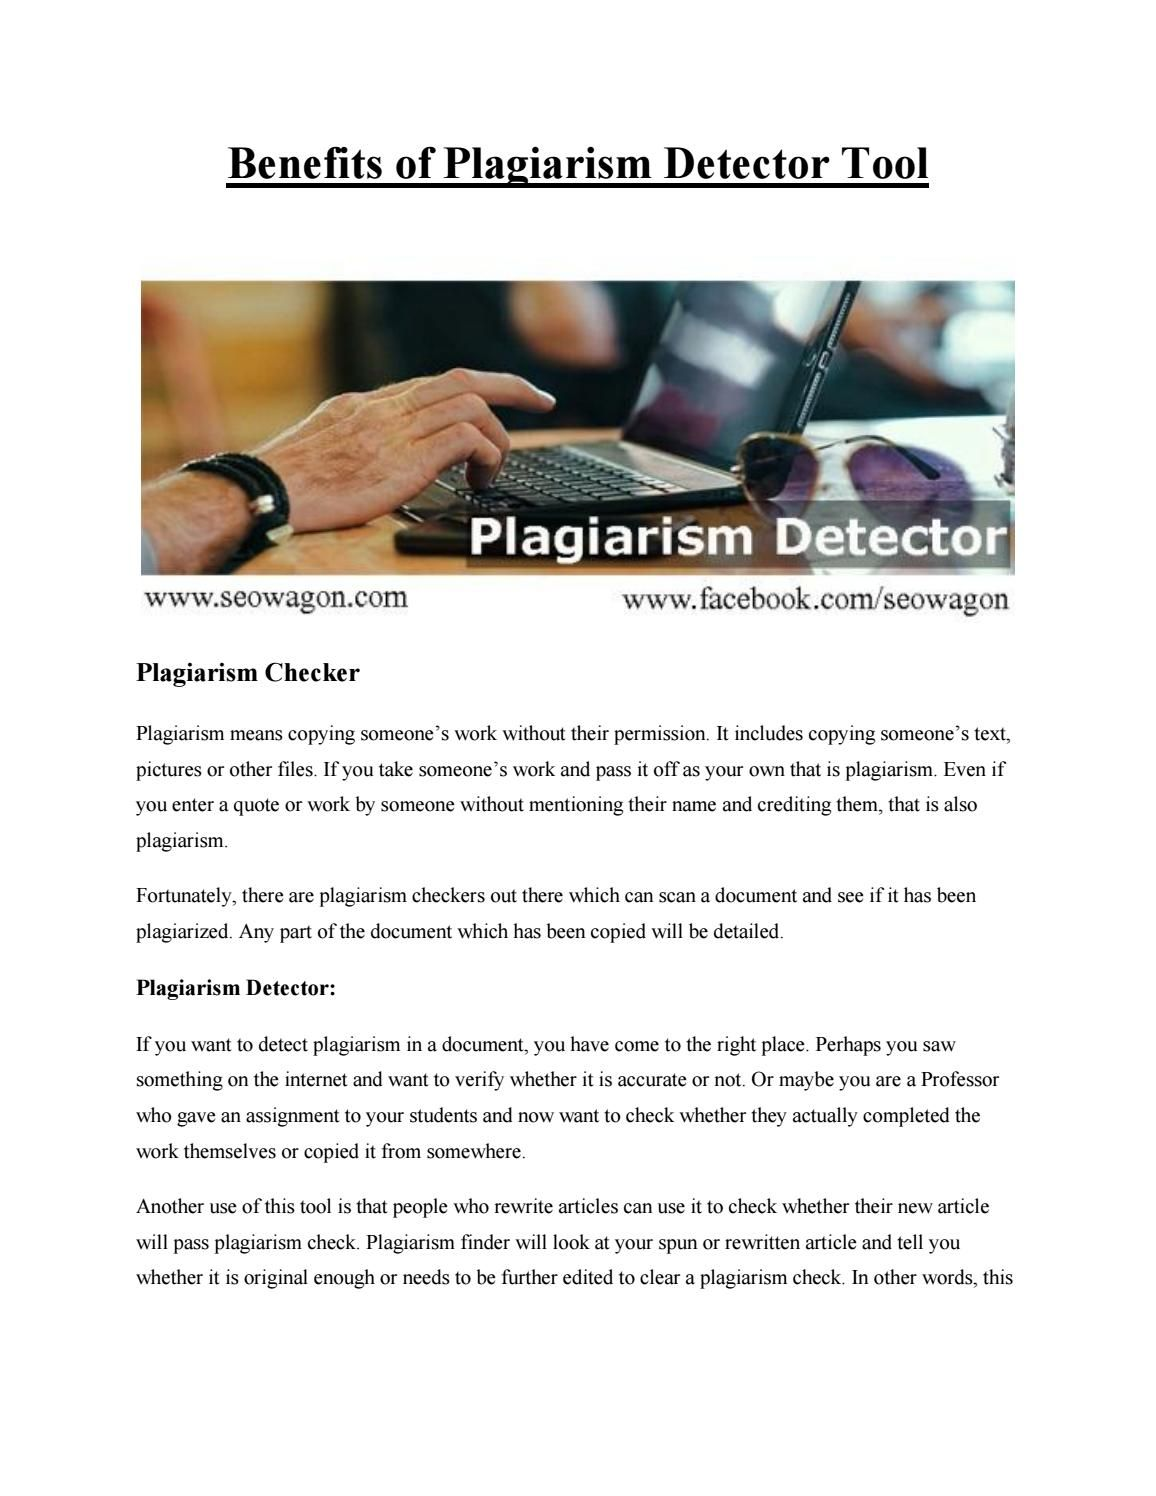 """check if essay plagiarized Essays & papers plagiarism checker plagiarism to identify and eliminate plagiarized elements  the last step is to click the button """"check my essay""""."""